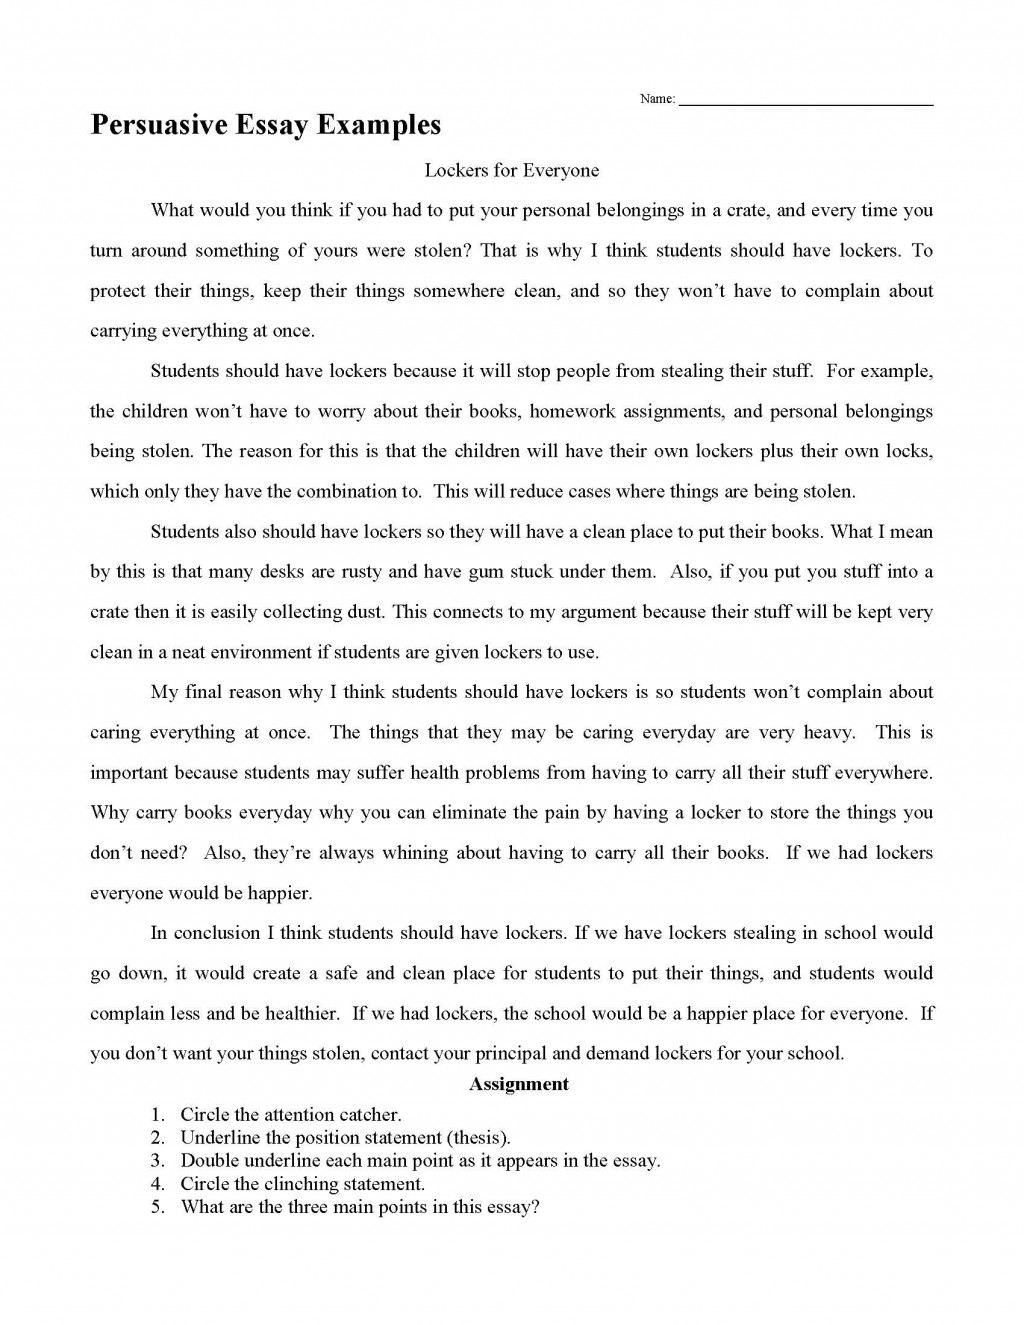 002 Essay Example Persuasive Examples Archaicawful Definition Literature Meaning And Literary Large